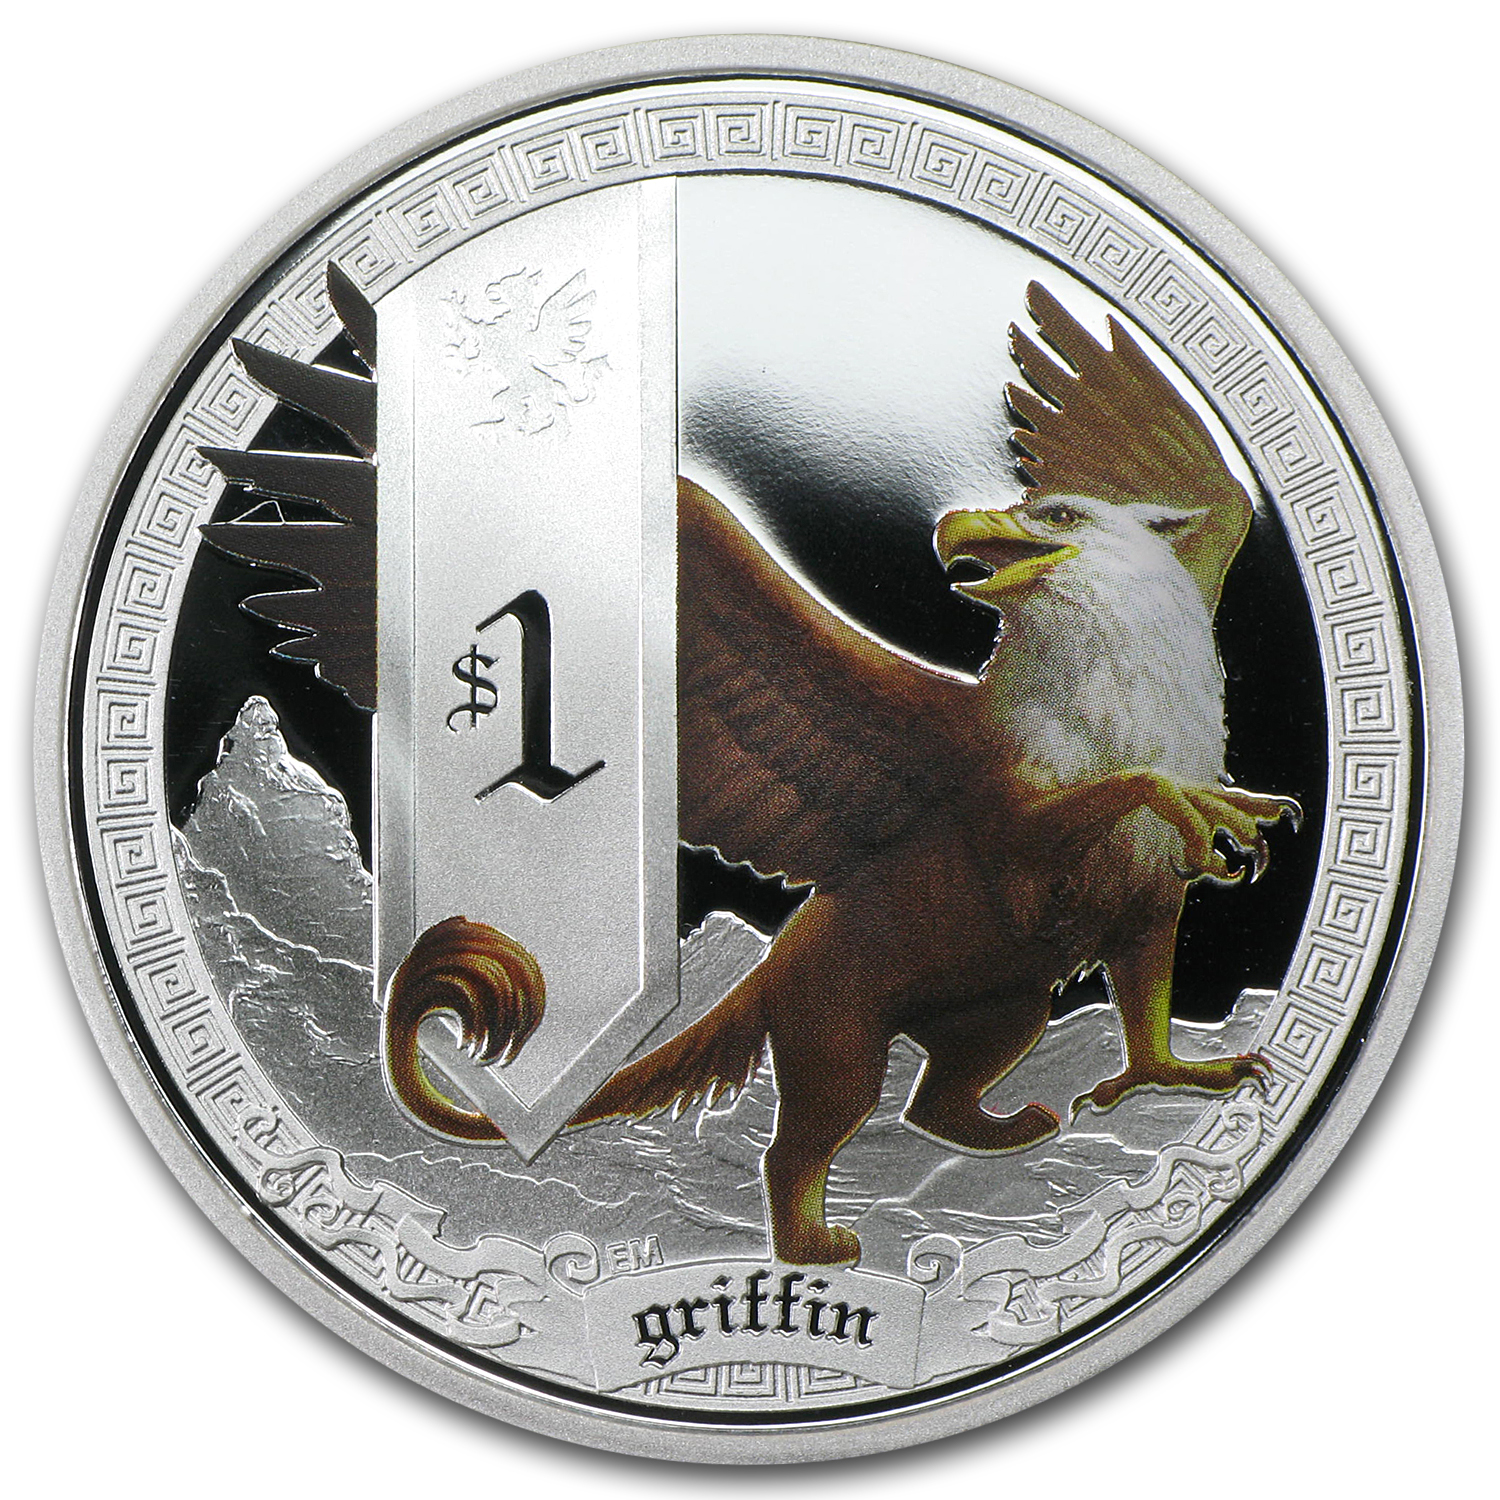 2013 1 oz Proof Silver Mythical Creatures - Griffin